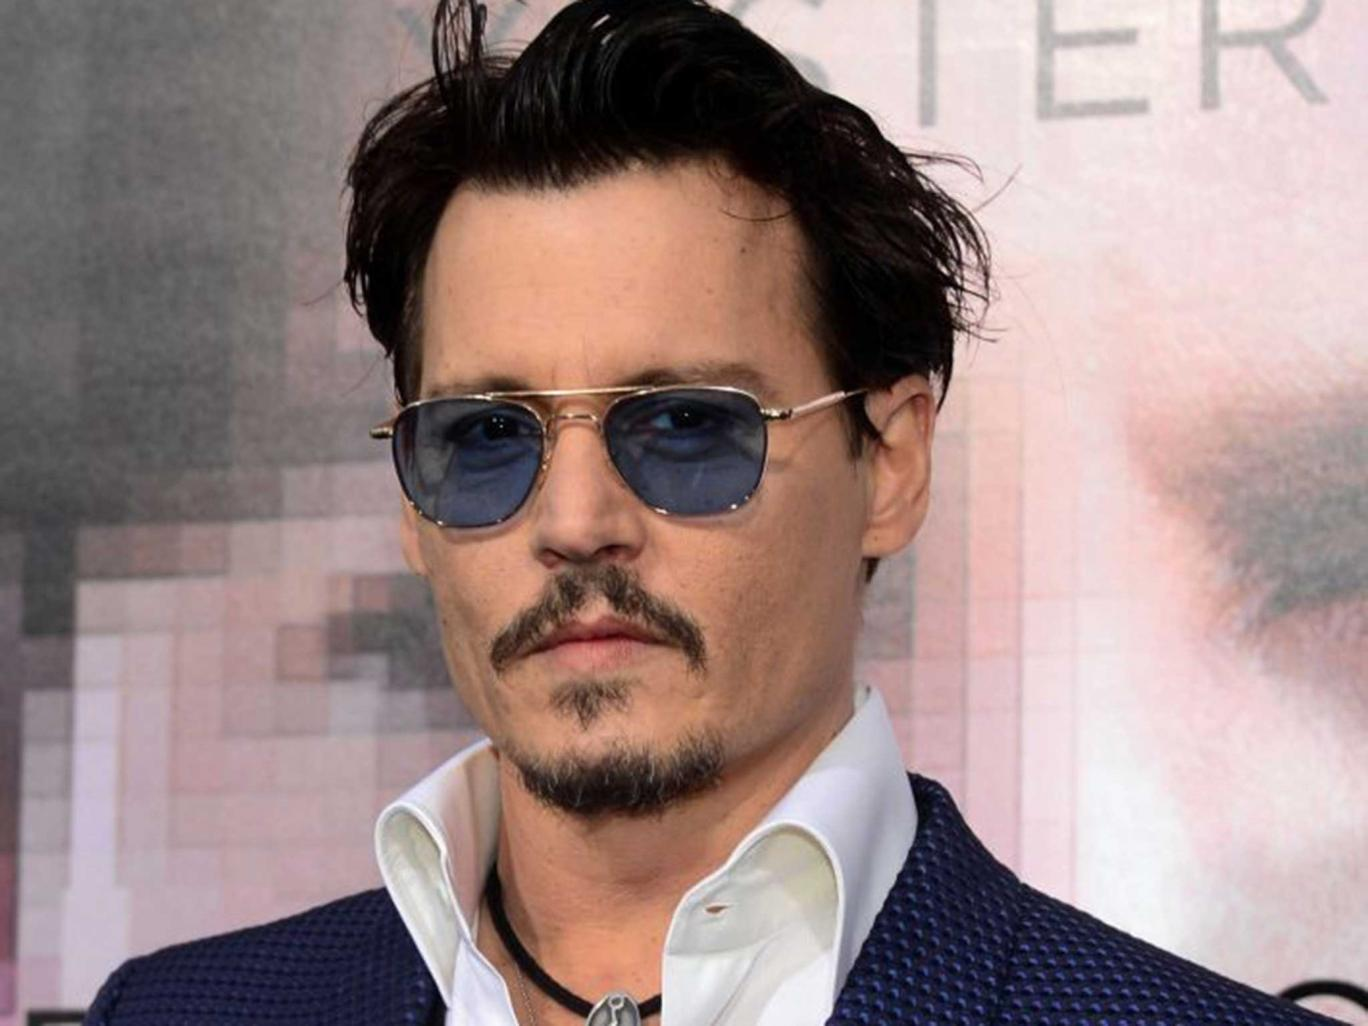 Johnny Depp | His Religion, Hobbies, Political Views Johnny Depp